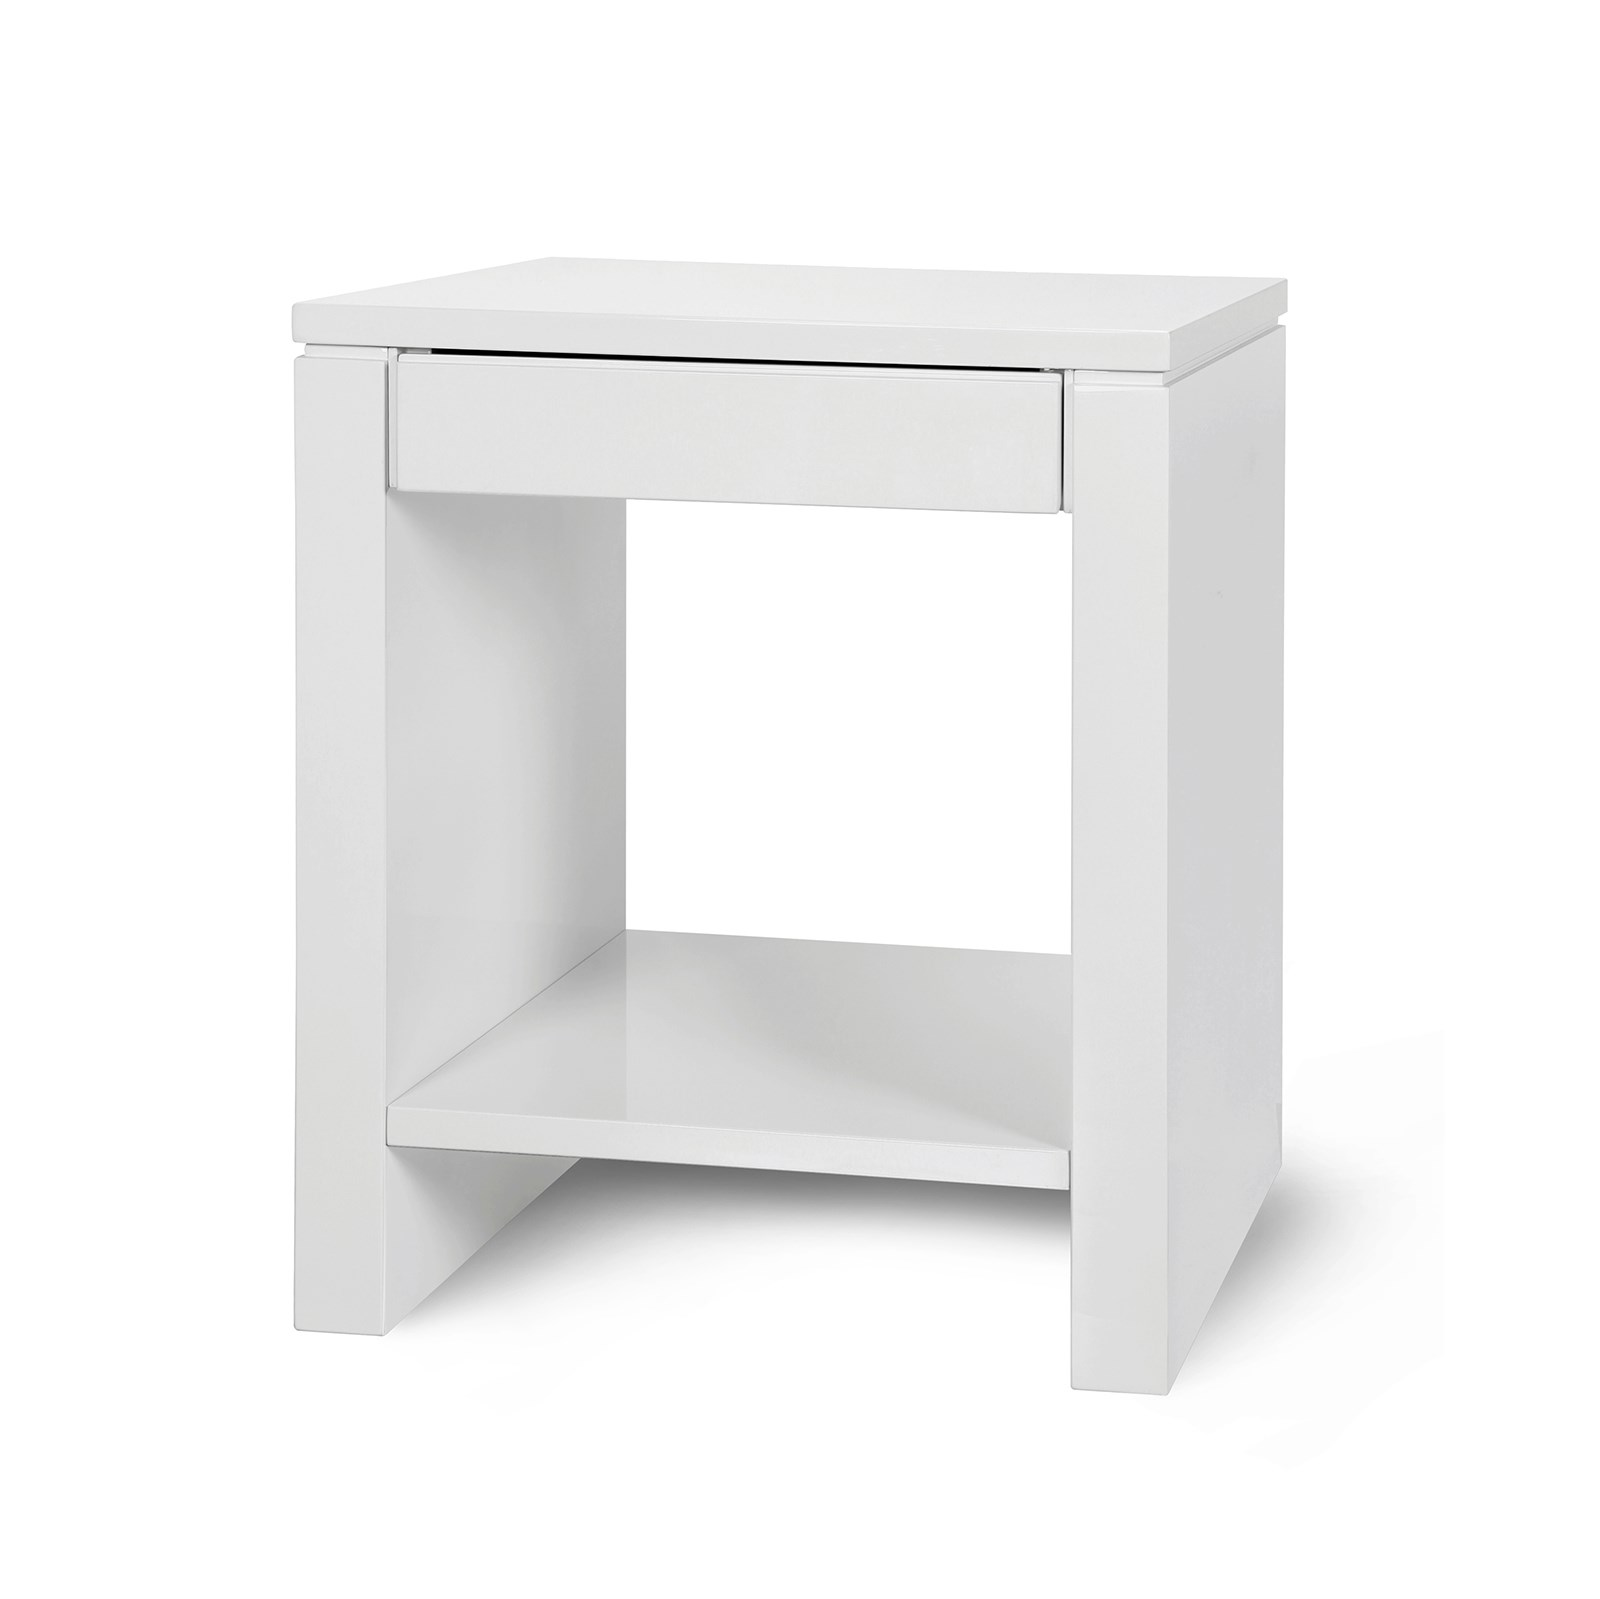 White side tables with drawers - White Side Tables With Drawers 10